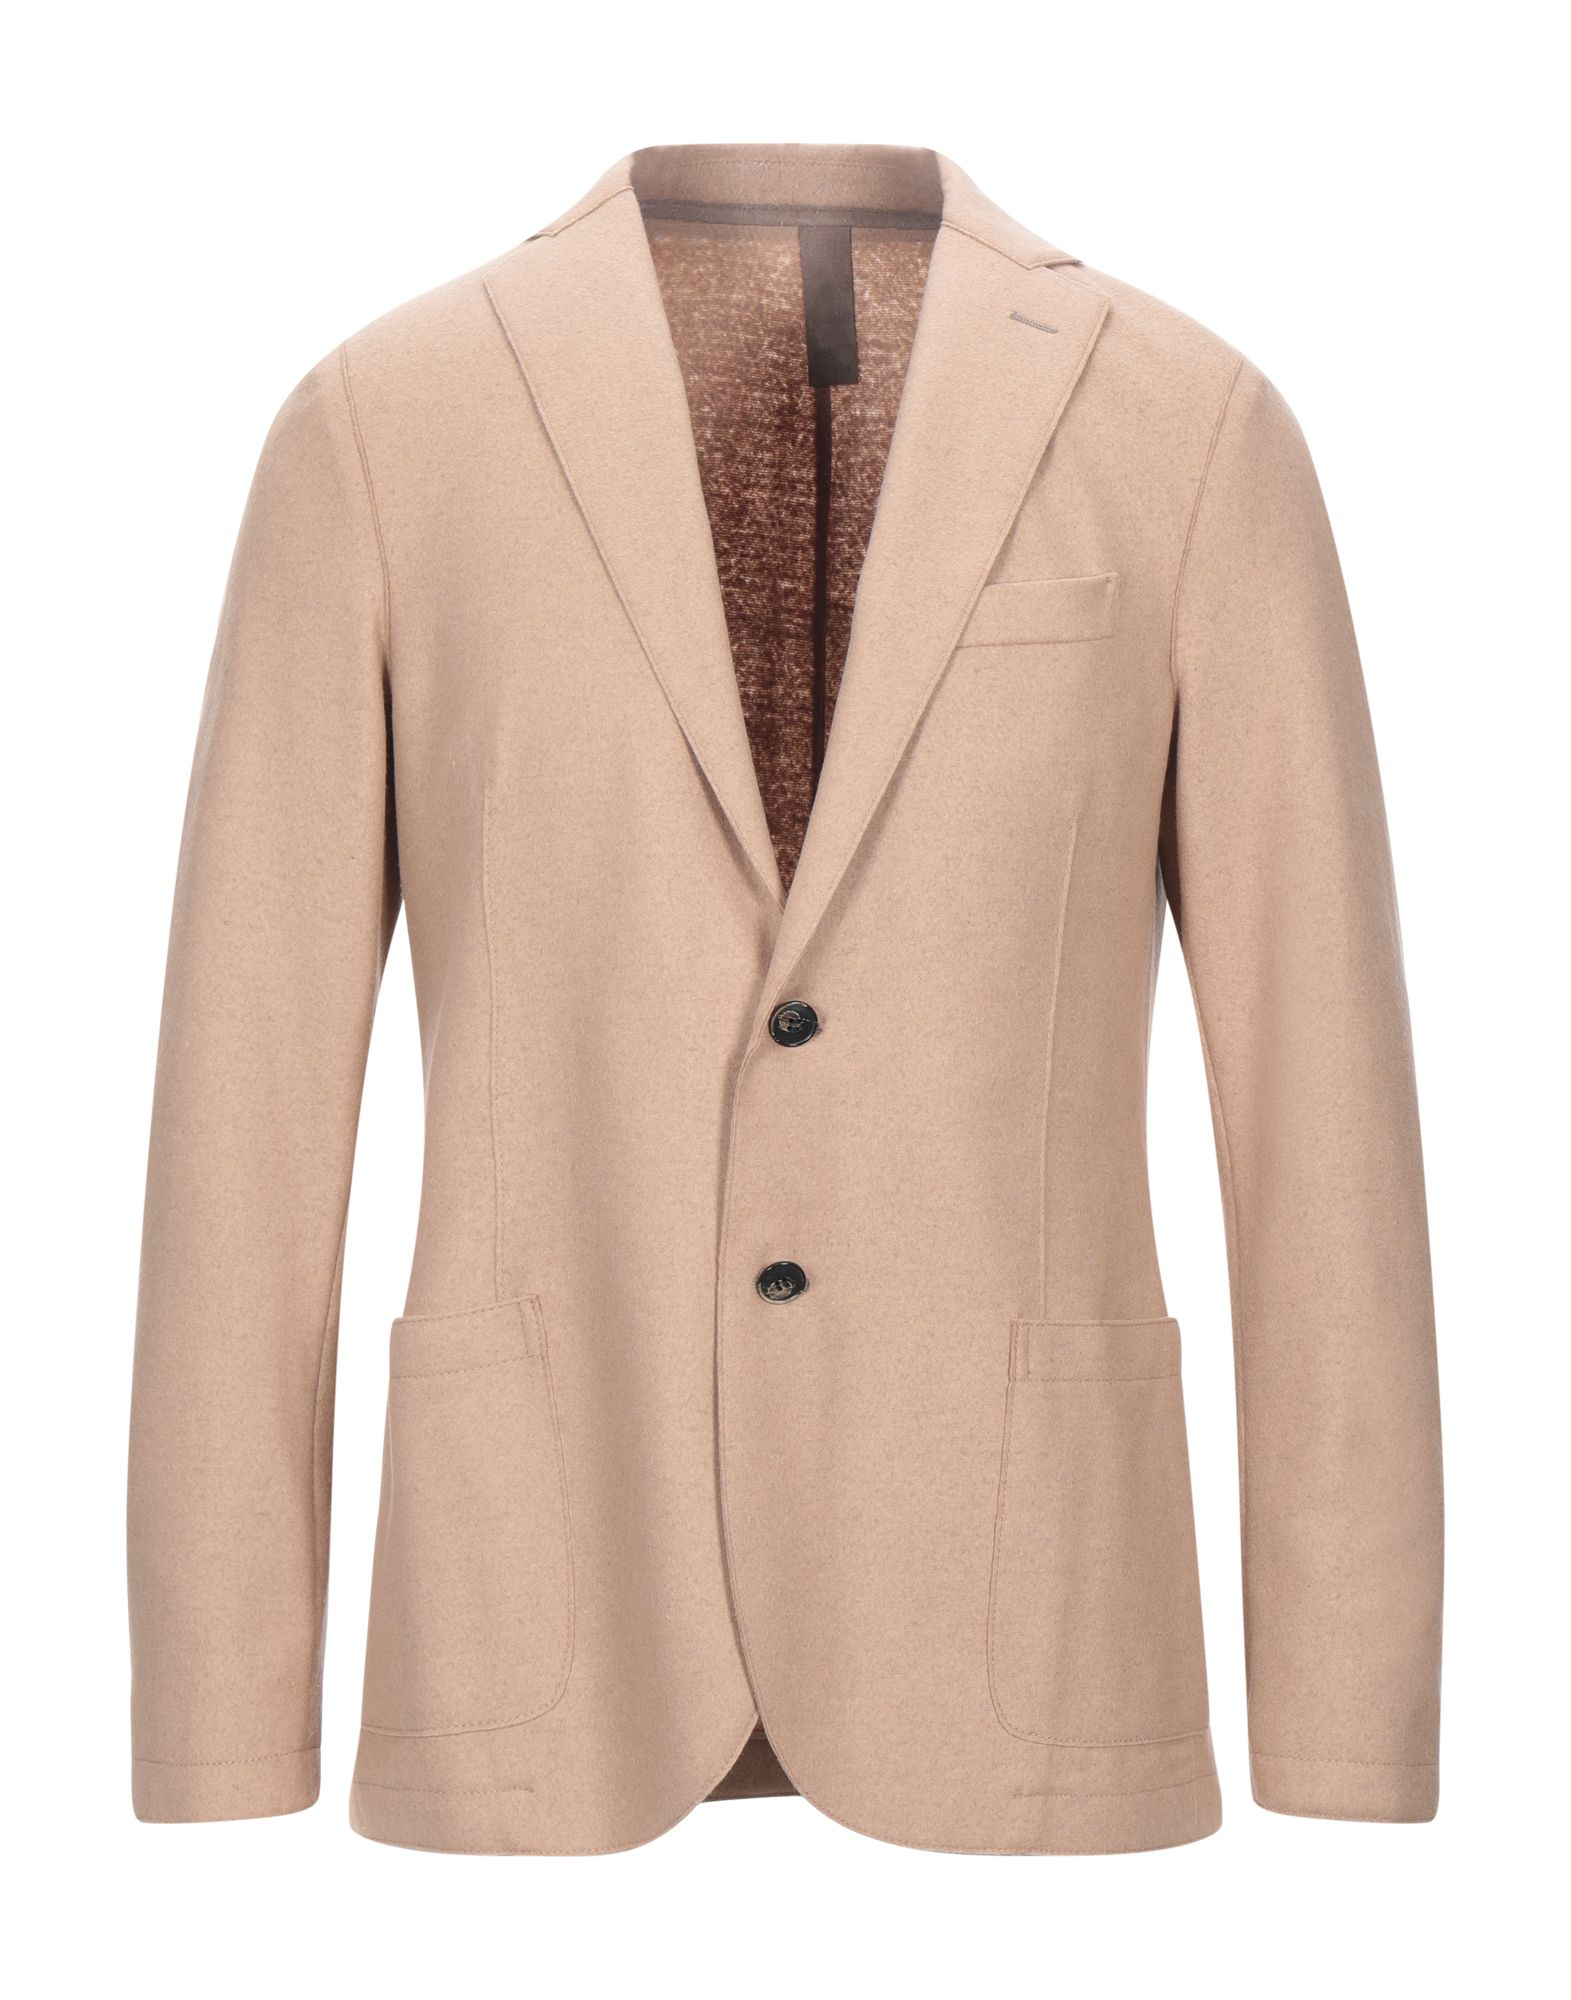 ELEVENTY Suit jackets. felt, no appliqués, solid color, multipockets, single chest pocket, one inside pocket, button closing, lapel collar, single-breasted, long sleeves, unlined, dual back vents, contains non-textile parts of animal origin. 80% Wool, 20% Polyamide, Polyester, Polyurethane